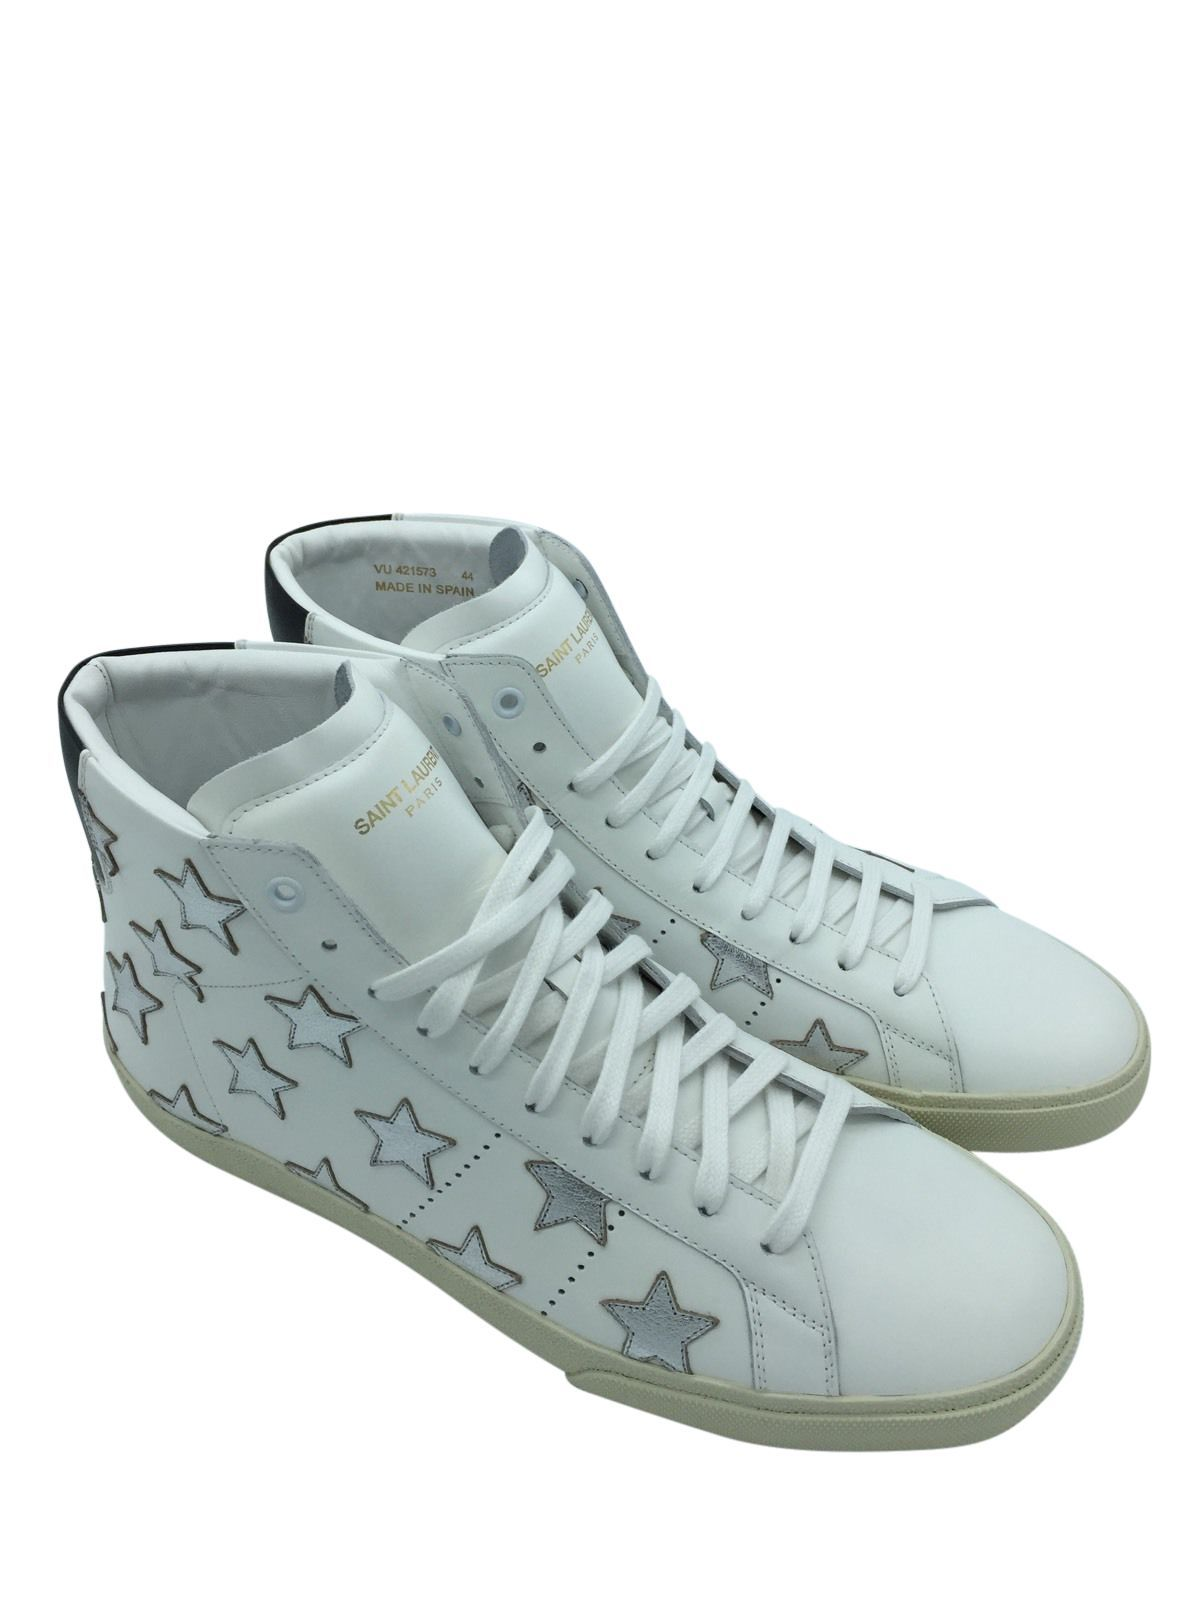 ce918ebda2434 YVES SAINT LAURENT Leather High-Top Sneaker with Metallic Stars ...